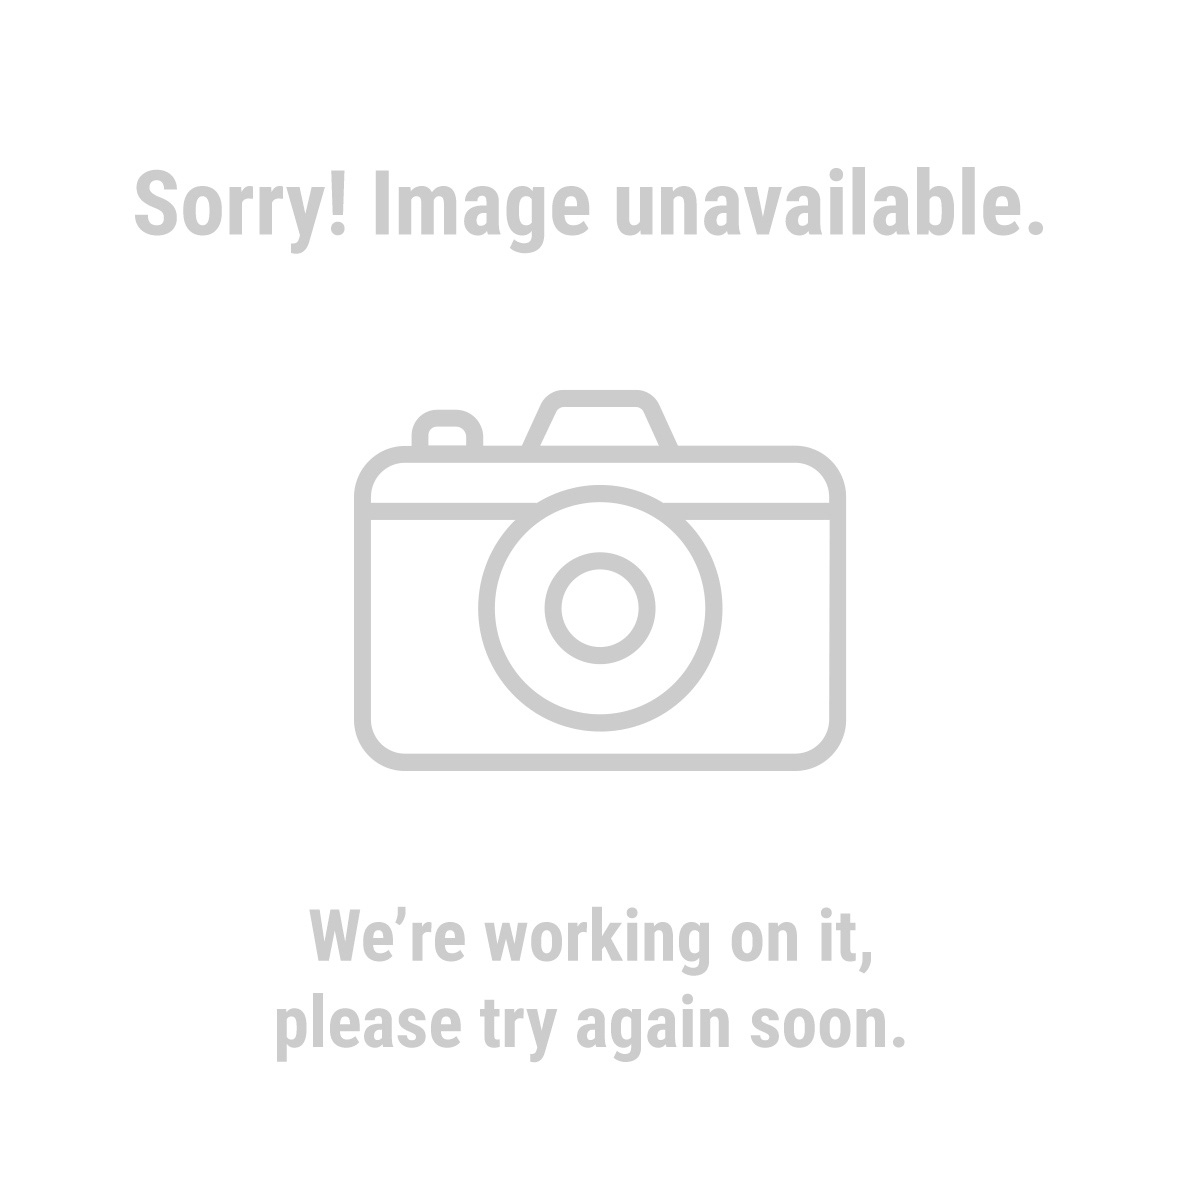 The Diablo™ Enclosed Retractable Air Hose Reel is built to handle TOUGH work conditions. The fully enclosed case protects your air hose for longer life. The high strength enclosed air hose reel is designed to resist dents, cracking and corrosion. The air hose reel has a spring-powered auto rewind and machined brass fittings for extra durability.